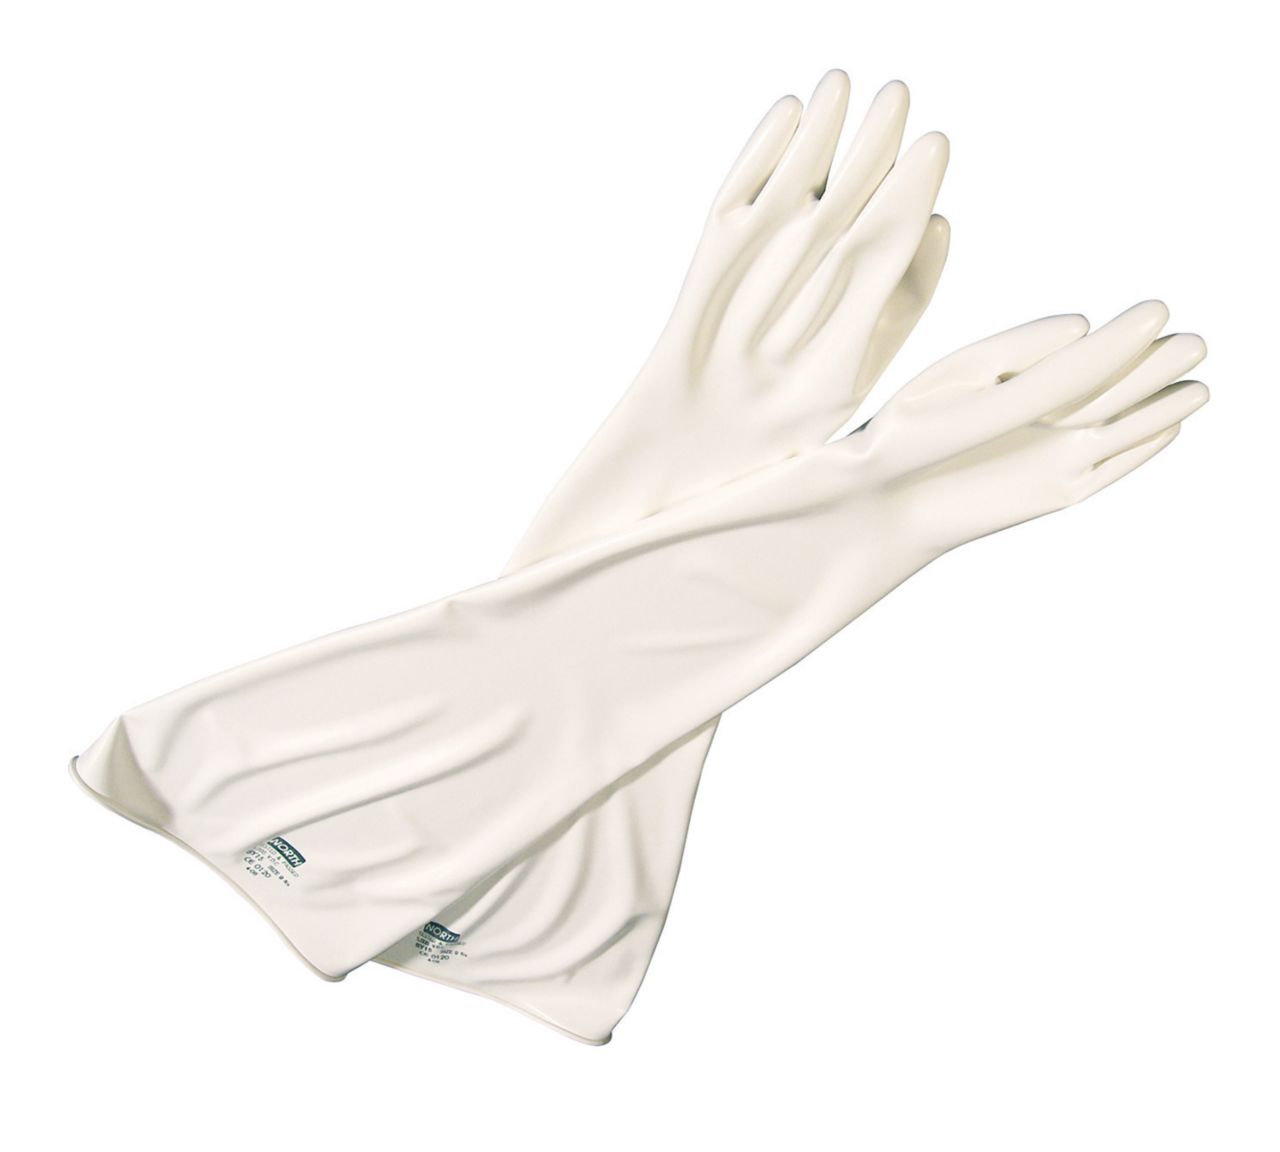 CSM Lead-Loaded Glovebox Gloves - 8YLY3032A_1